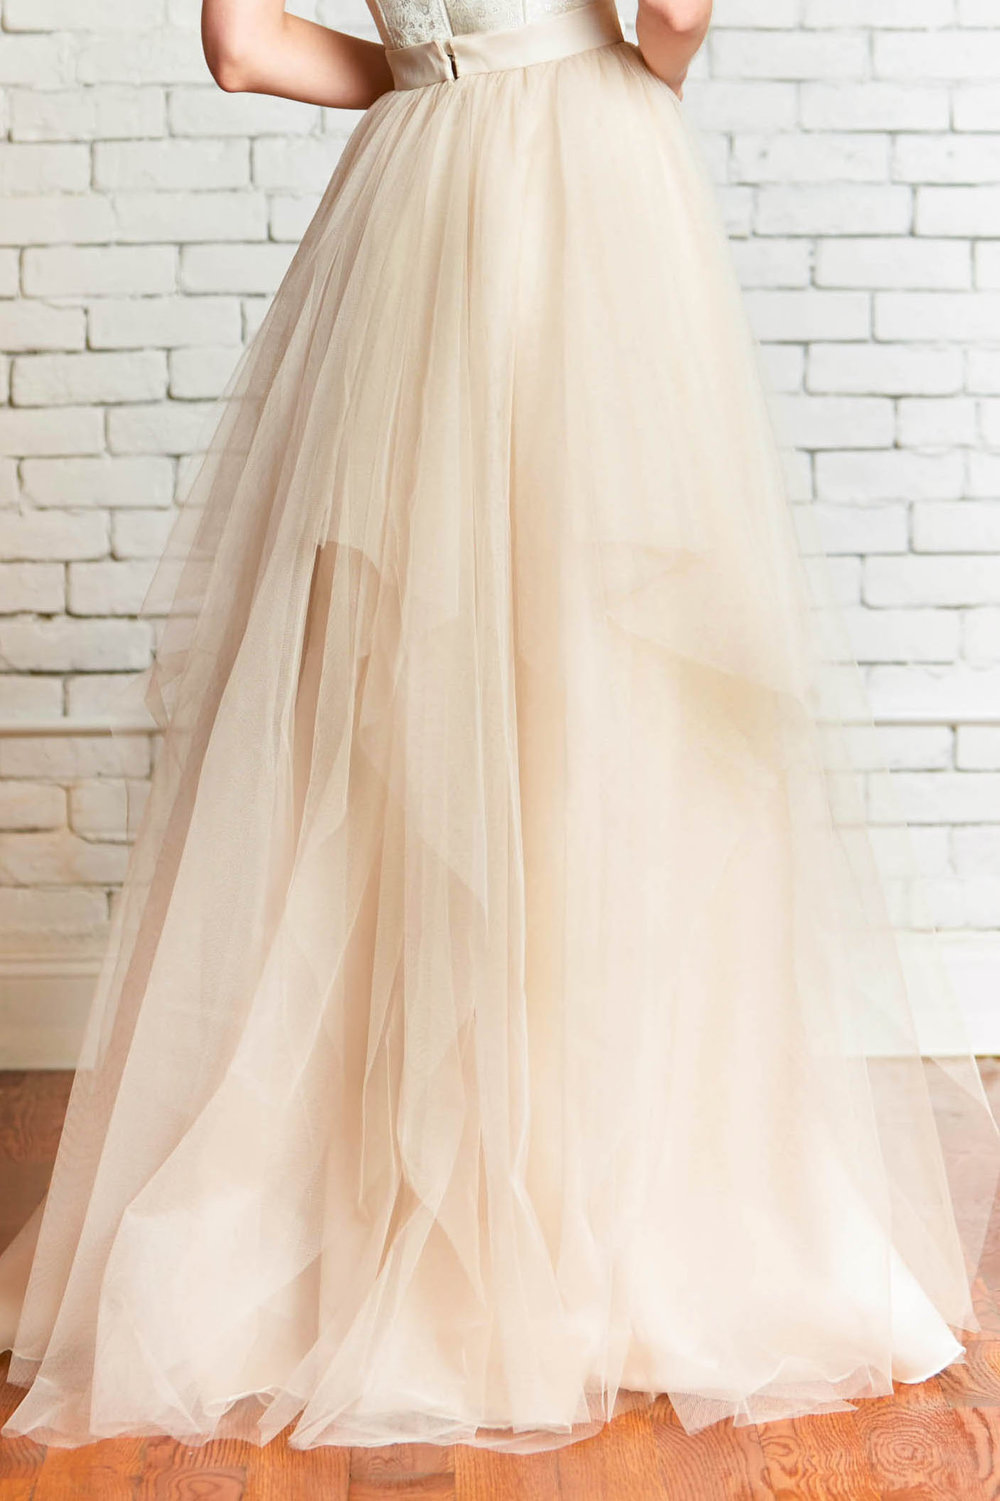 McKinley-Back_Boho_Wedding_Ballgown_Skirt_Tulle_Separates.jpg